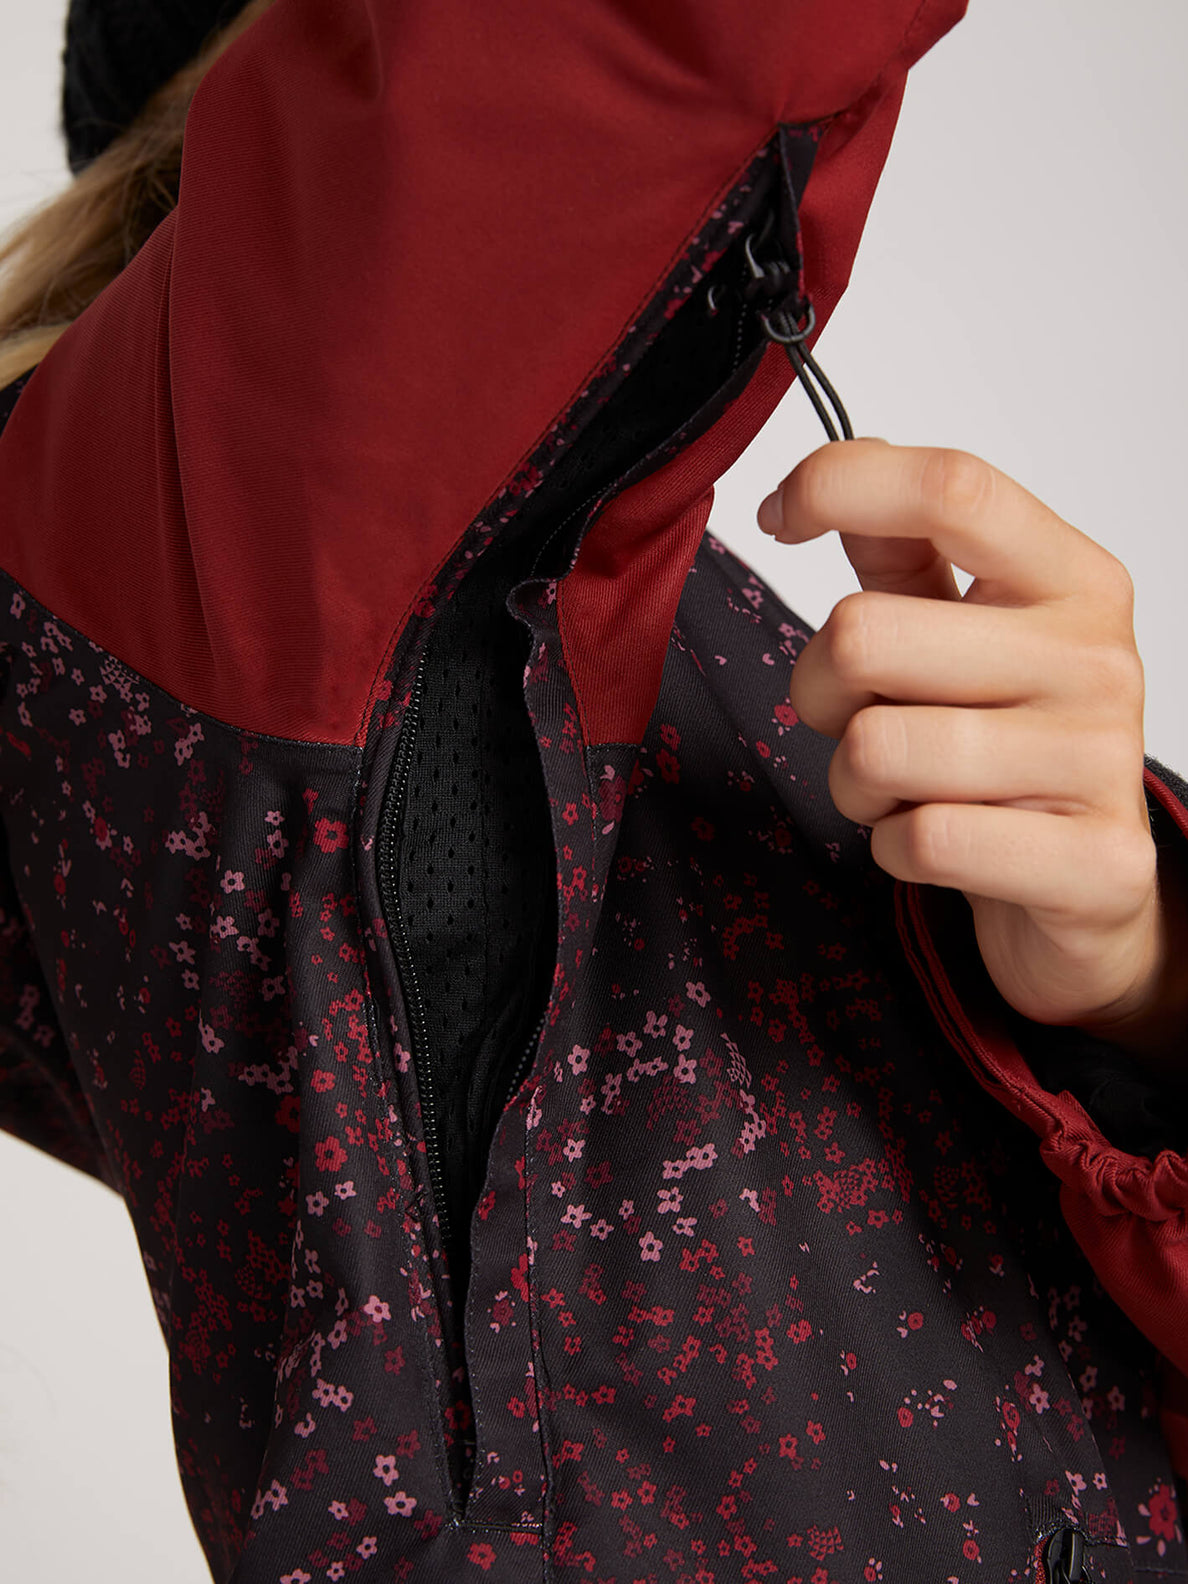 Meadow Insulated Jacket In Black Floral Print, Fourth Alternate View